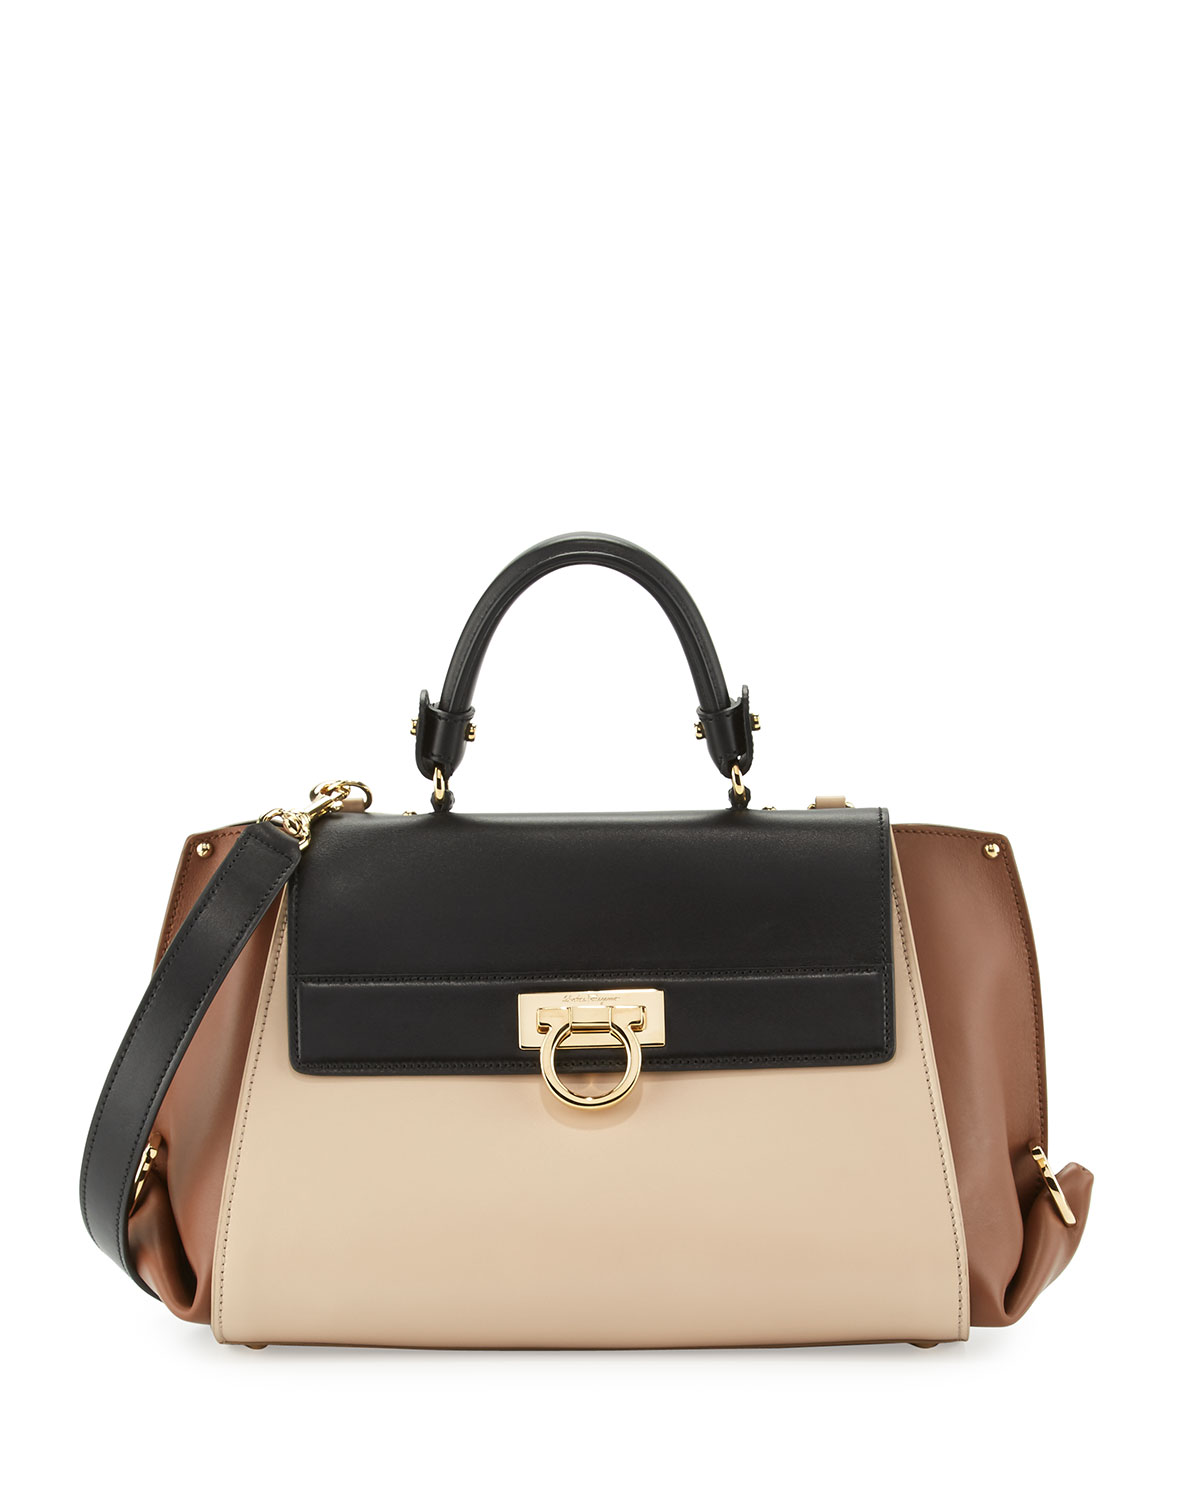 07a192d33a Salvatore Ferragamo Sofia Medium Colorblock Leather Satchel Bag ...